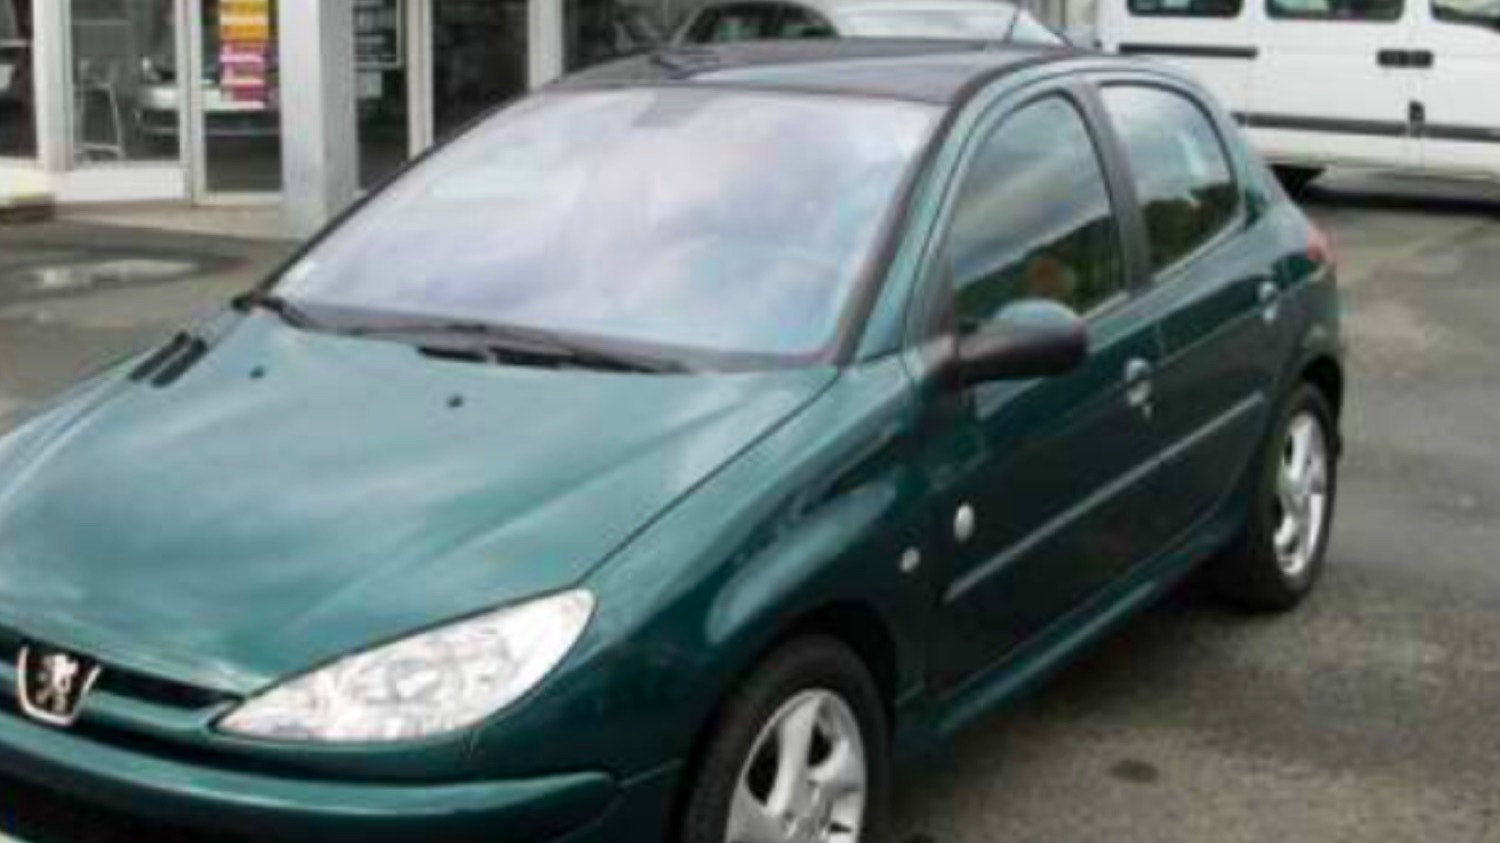 Peugeot 206 Disponible Aéroport - Gare - Métro, 2004, Diesel